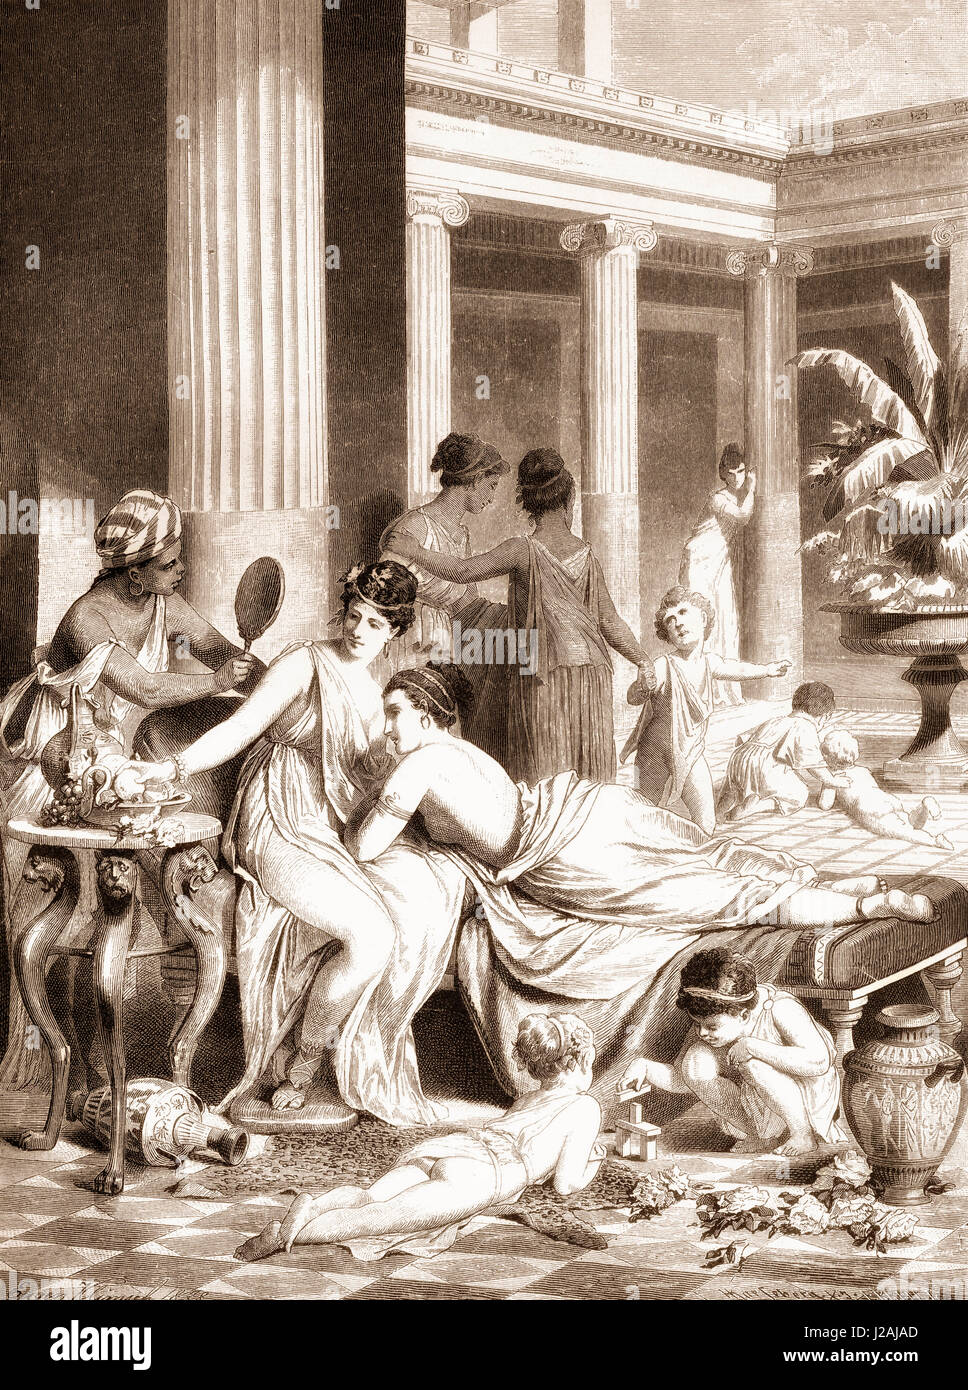 Morning scene in an ancient Greek women's peristyle - Stock Image